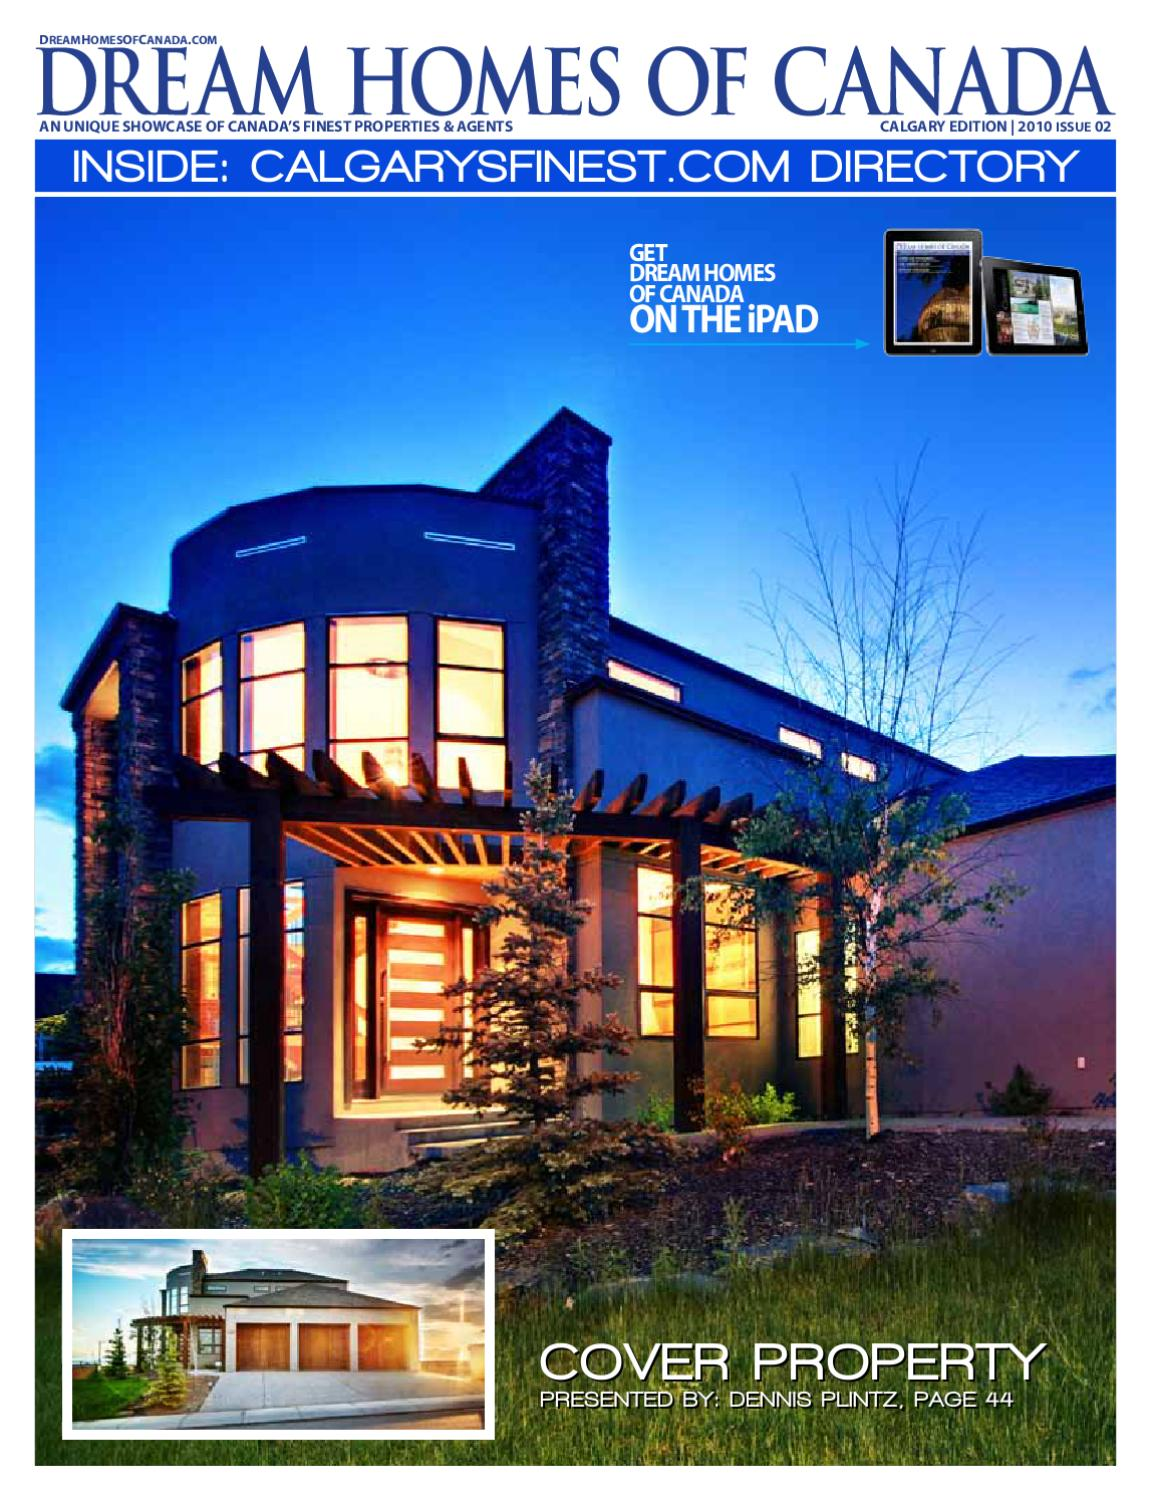 dream homes of canada fall 2010 by luxe media inc issuu